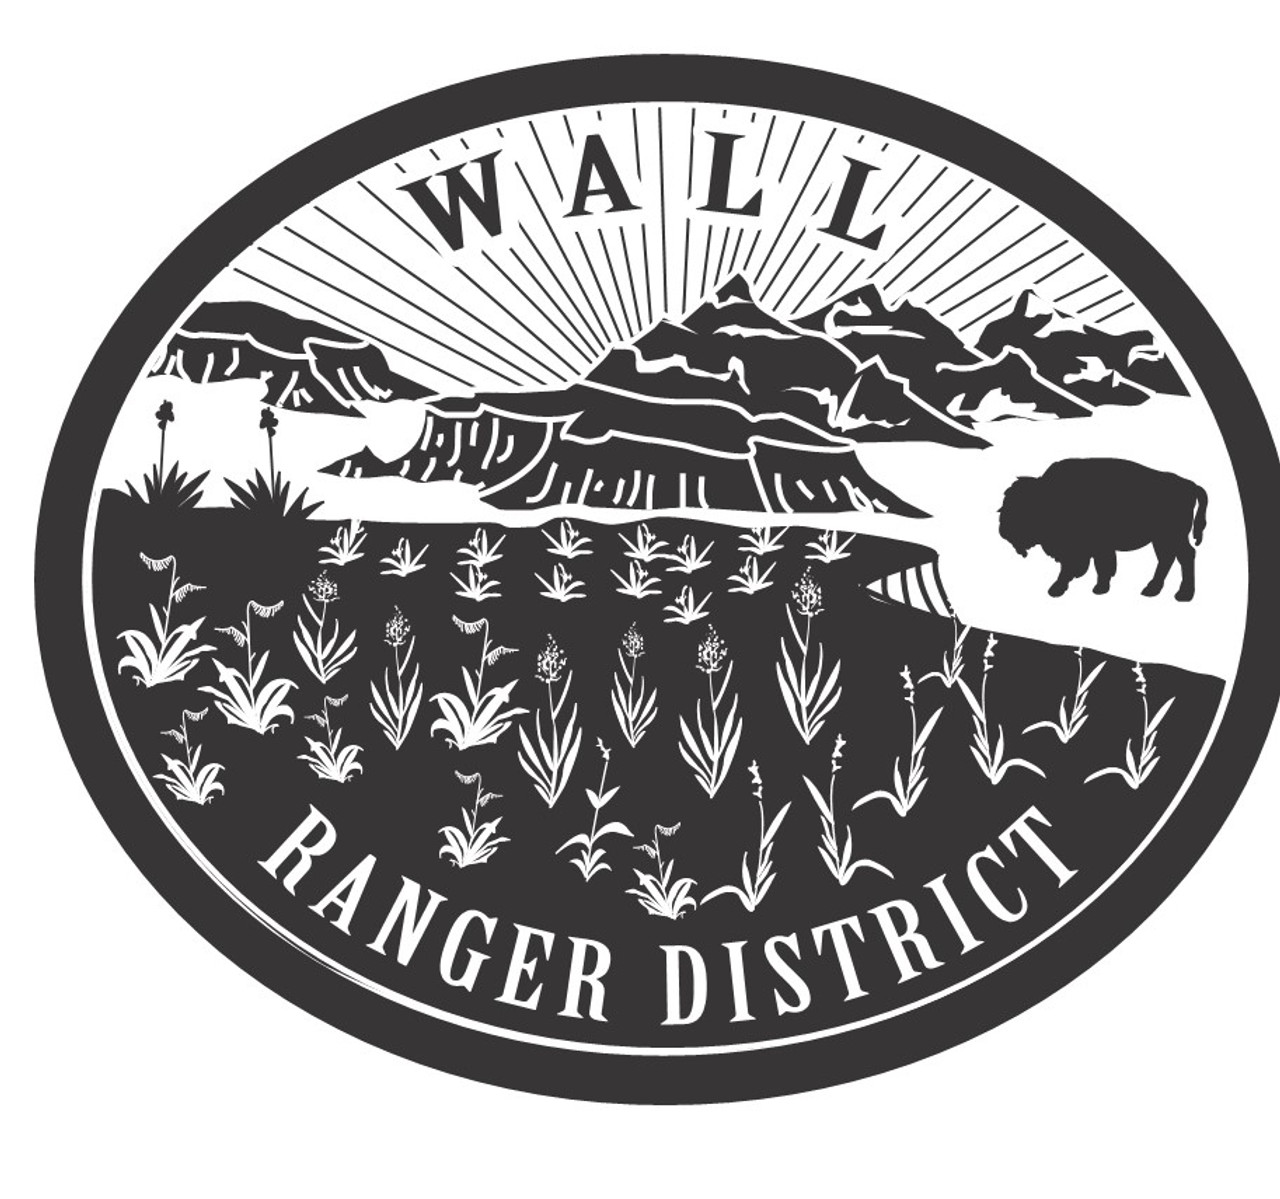 Wall Ranger District Buckle